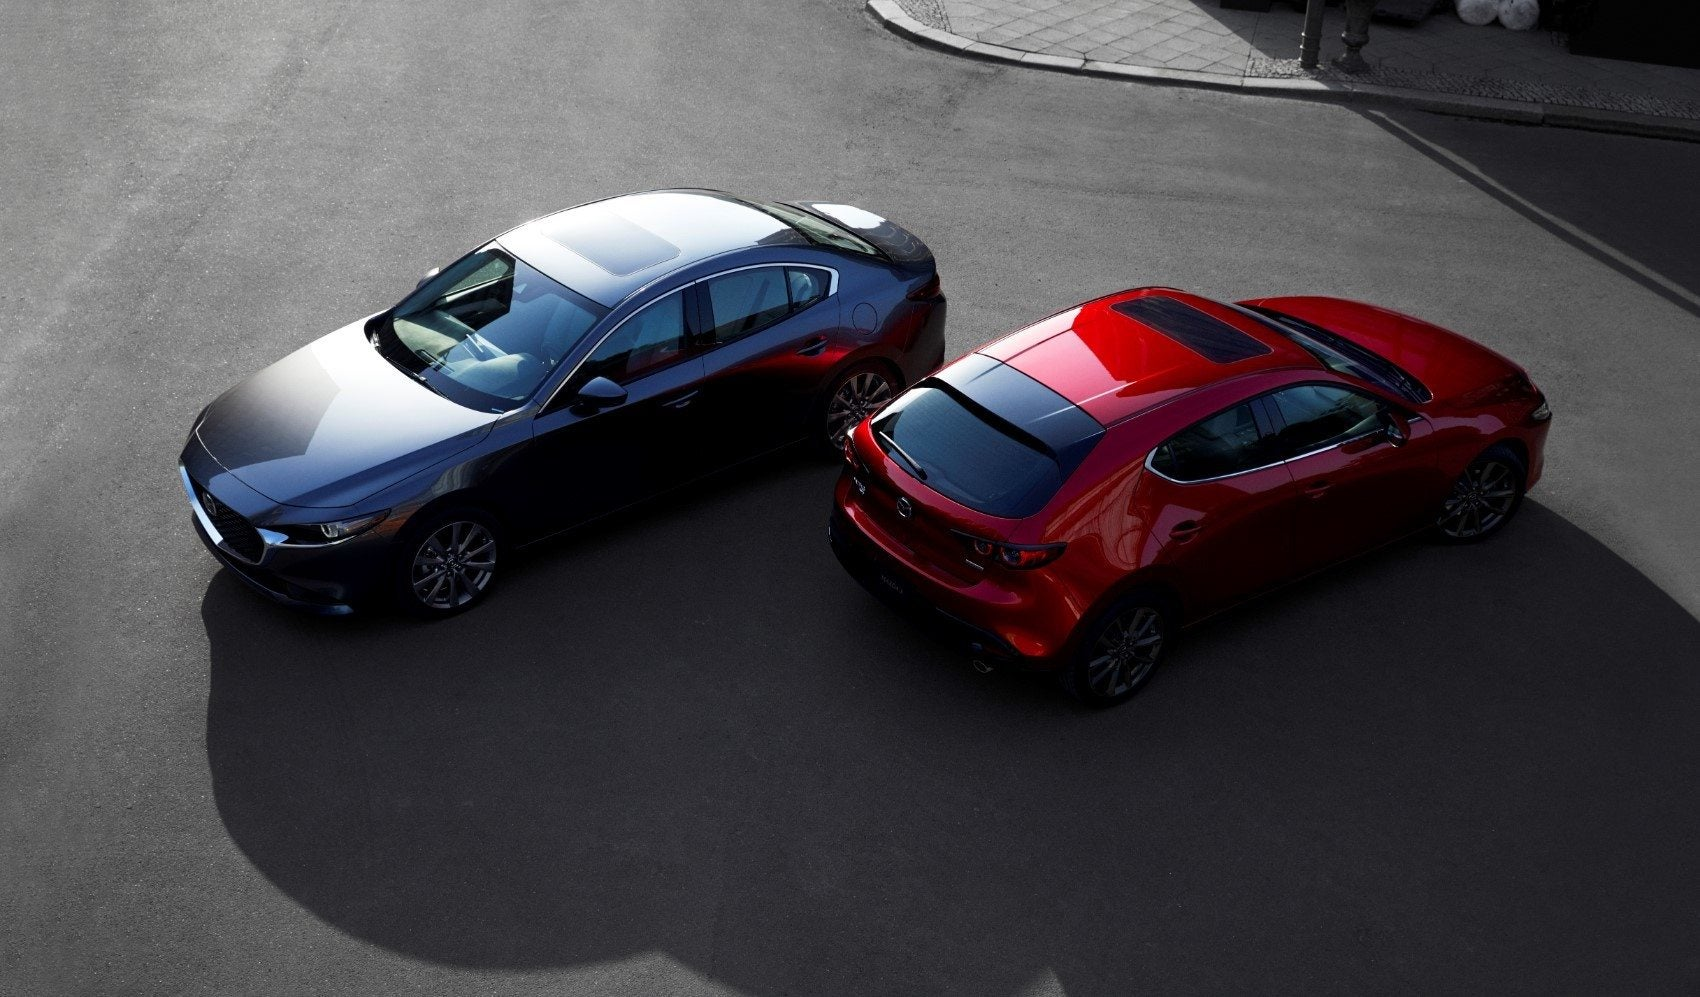 2020 Mazda3 Hatchback & Sedan: A Quick But Detailed Overview